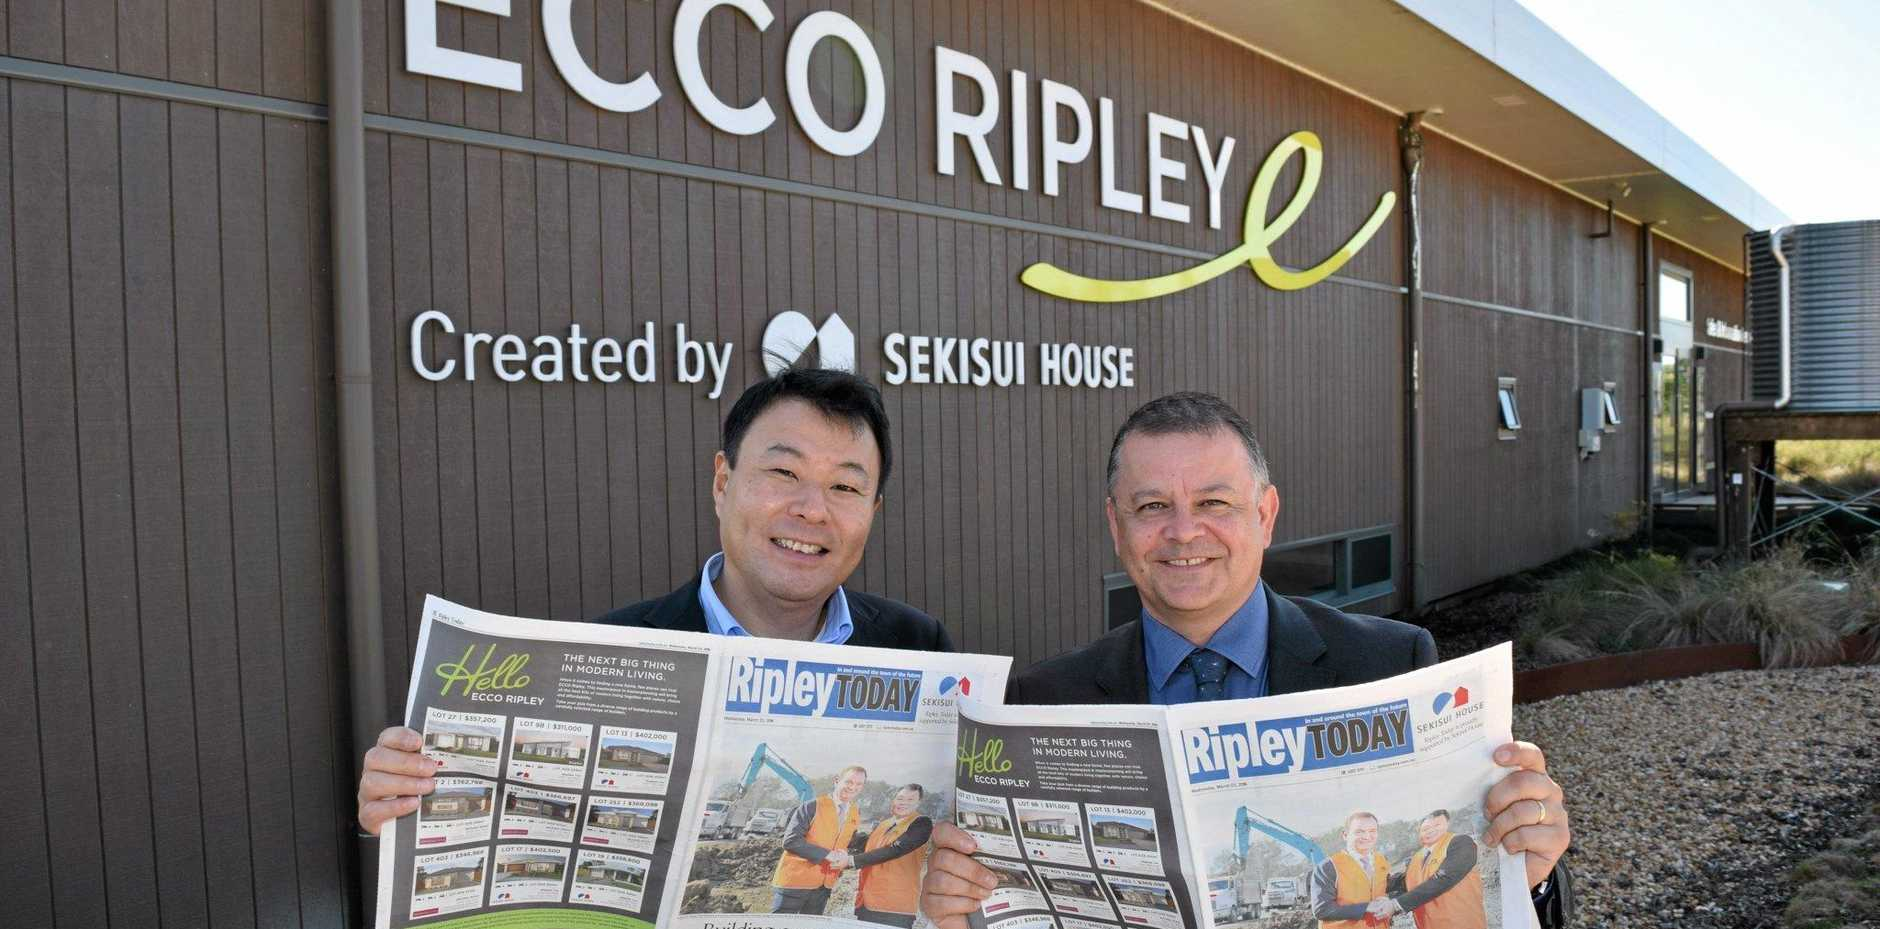 Sekisui House Australia CEO and managing director Toru Abe and APN ARM CEO Neil Monaghan hold the first ever edition of Ripley Today.